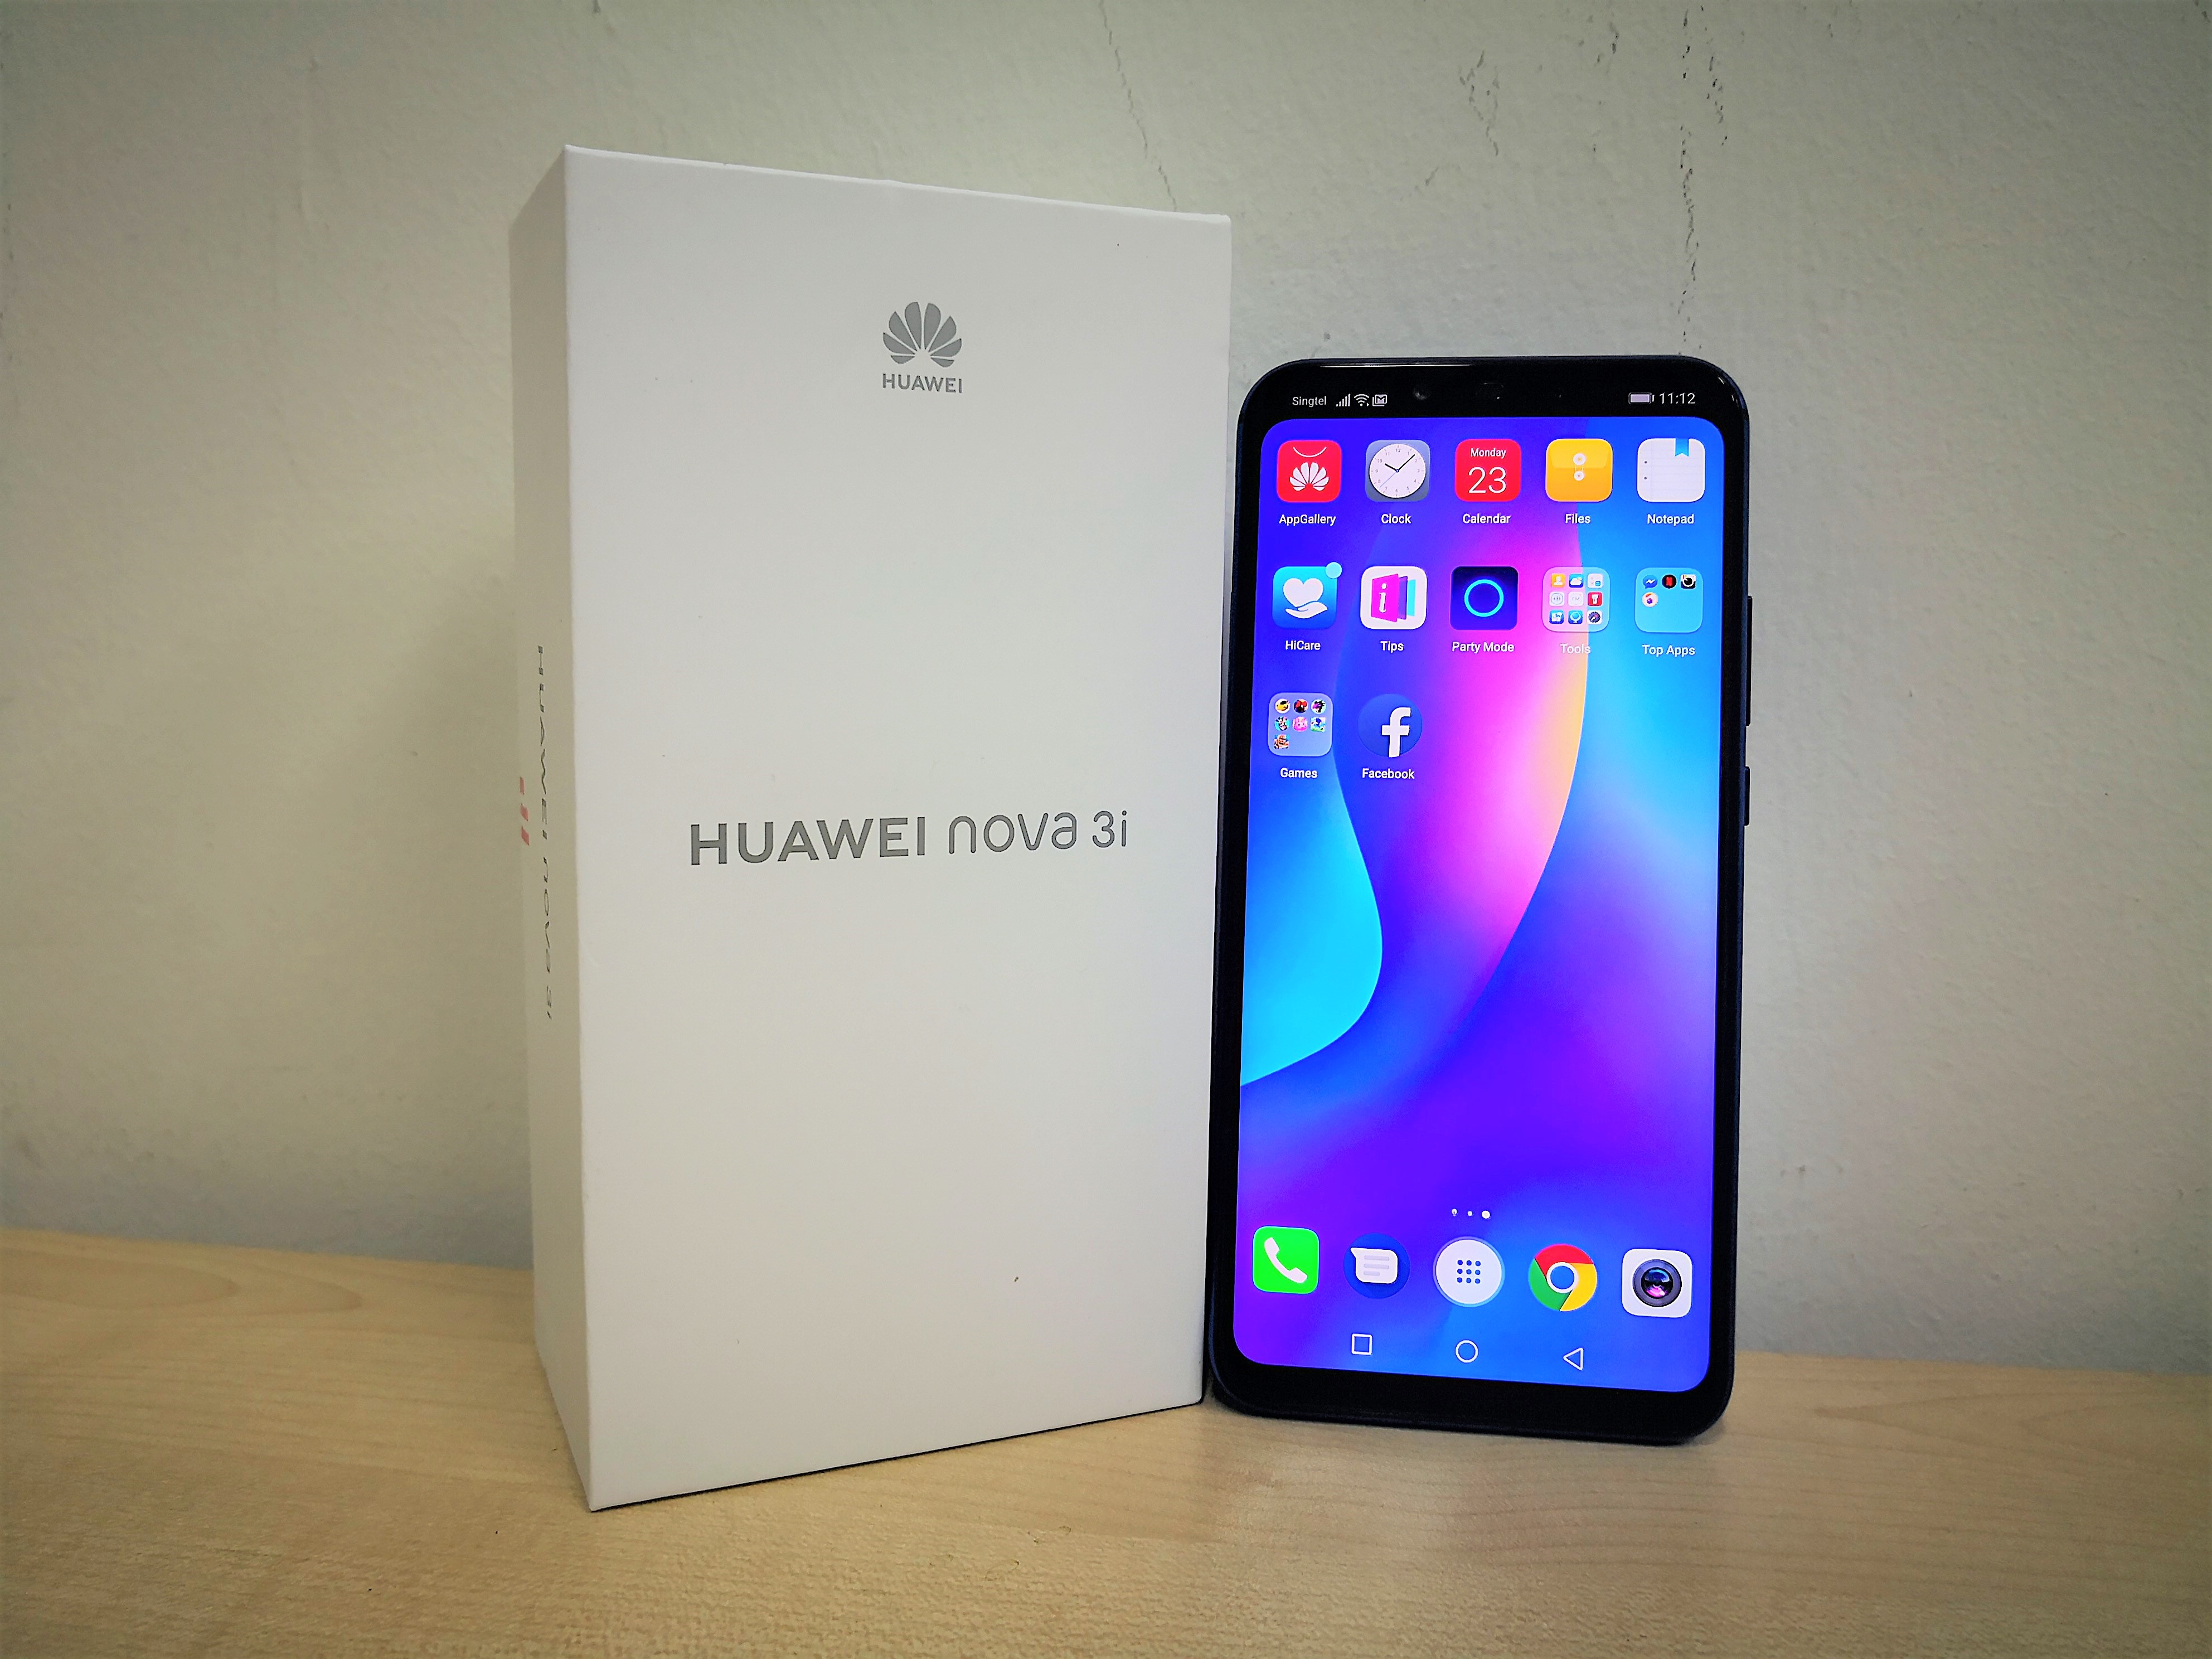 Huawei Nova 3i Review - Worth it? - The Tech Revolutionist